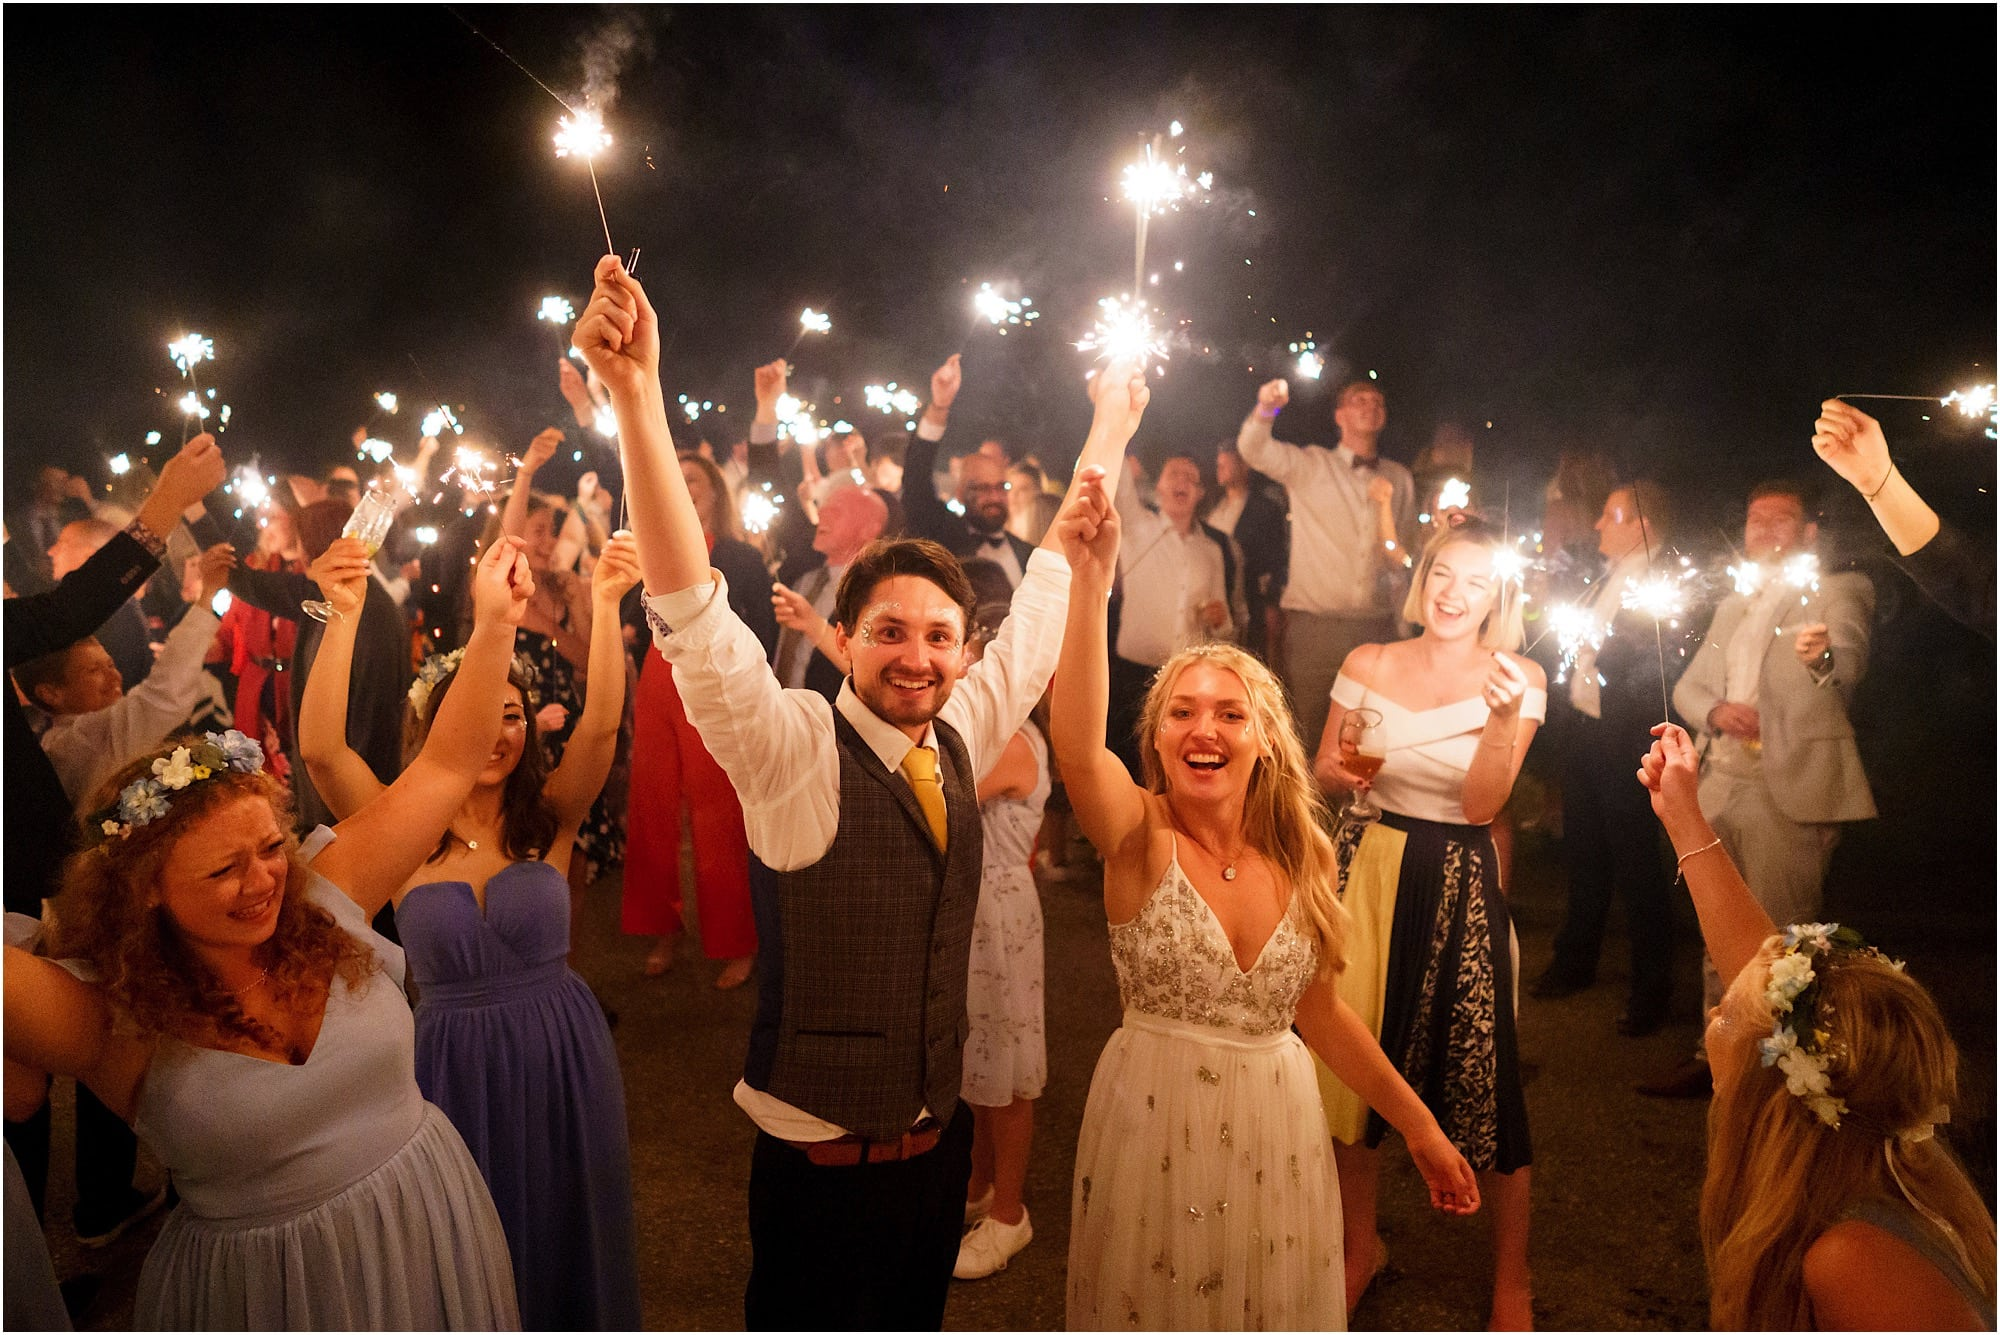 Are sparklers allowed at Waxham Barn?